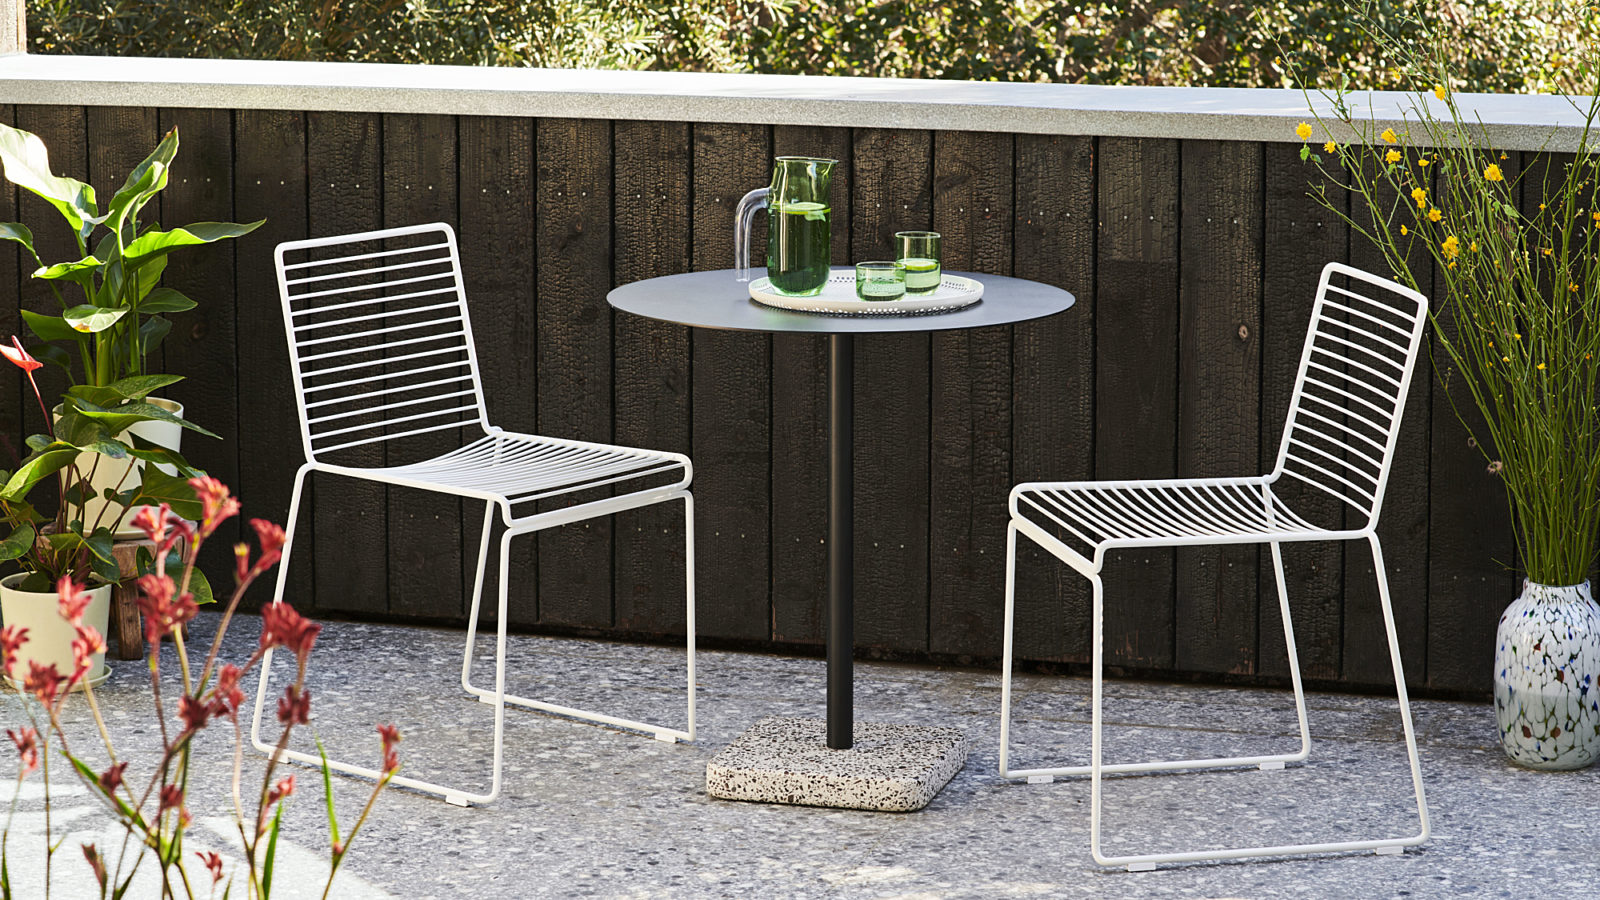 Two white HAY Hee Dining Chairs facing each other across a black round HAY Terrazzo Table on a stone patio outside.